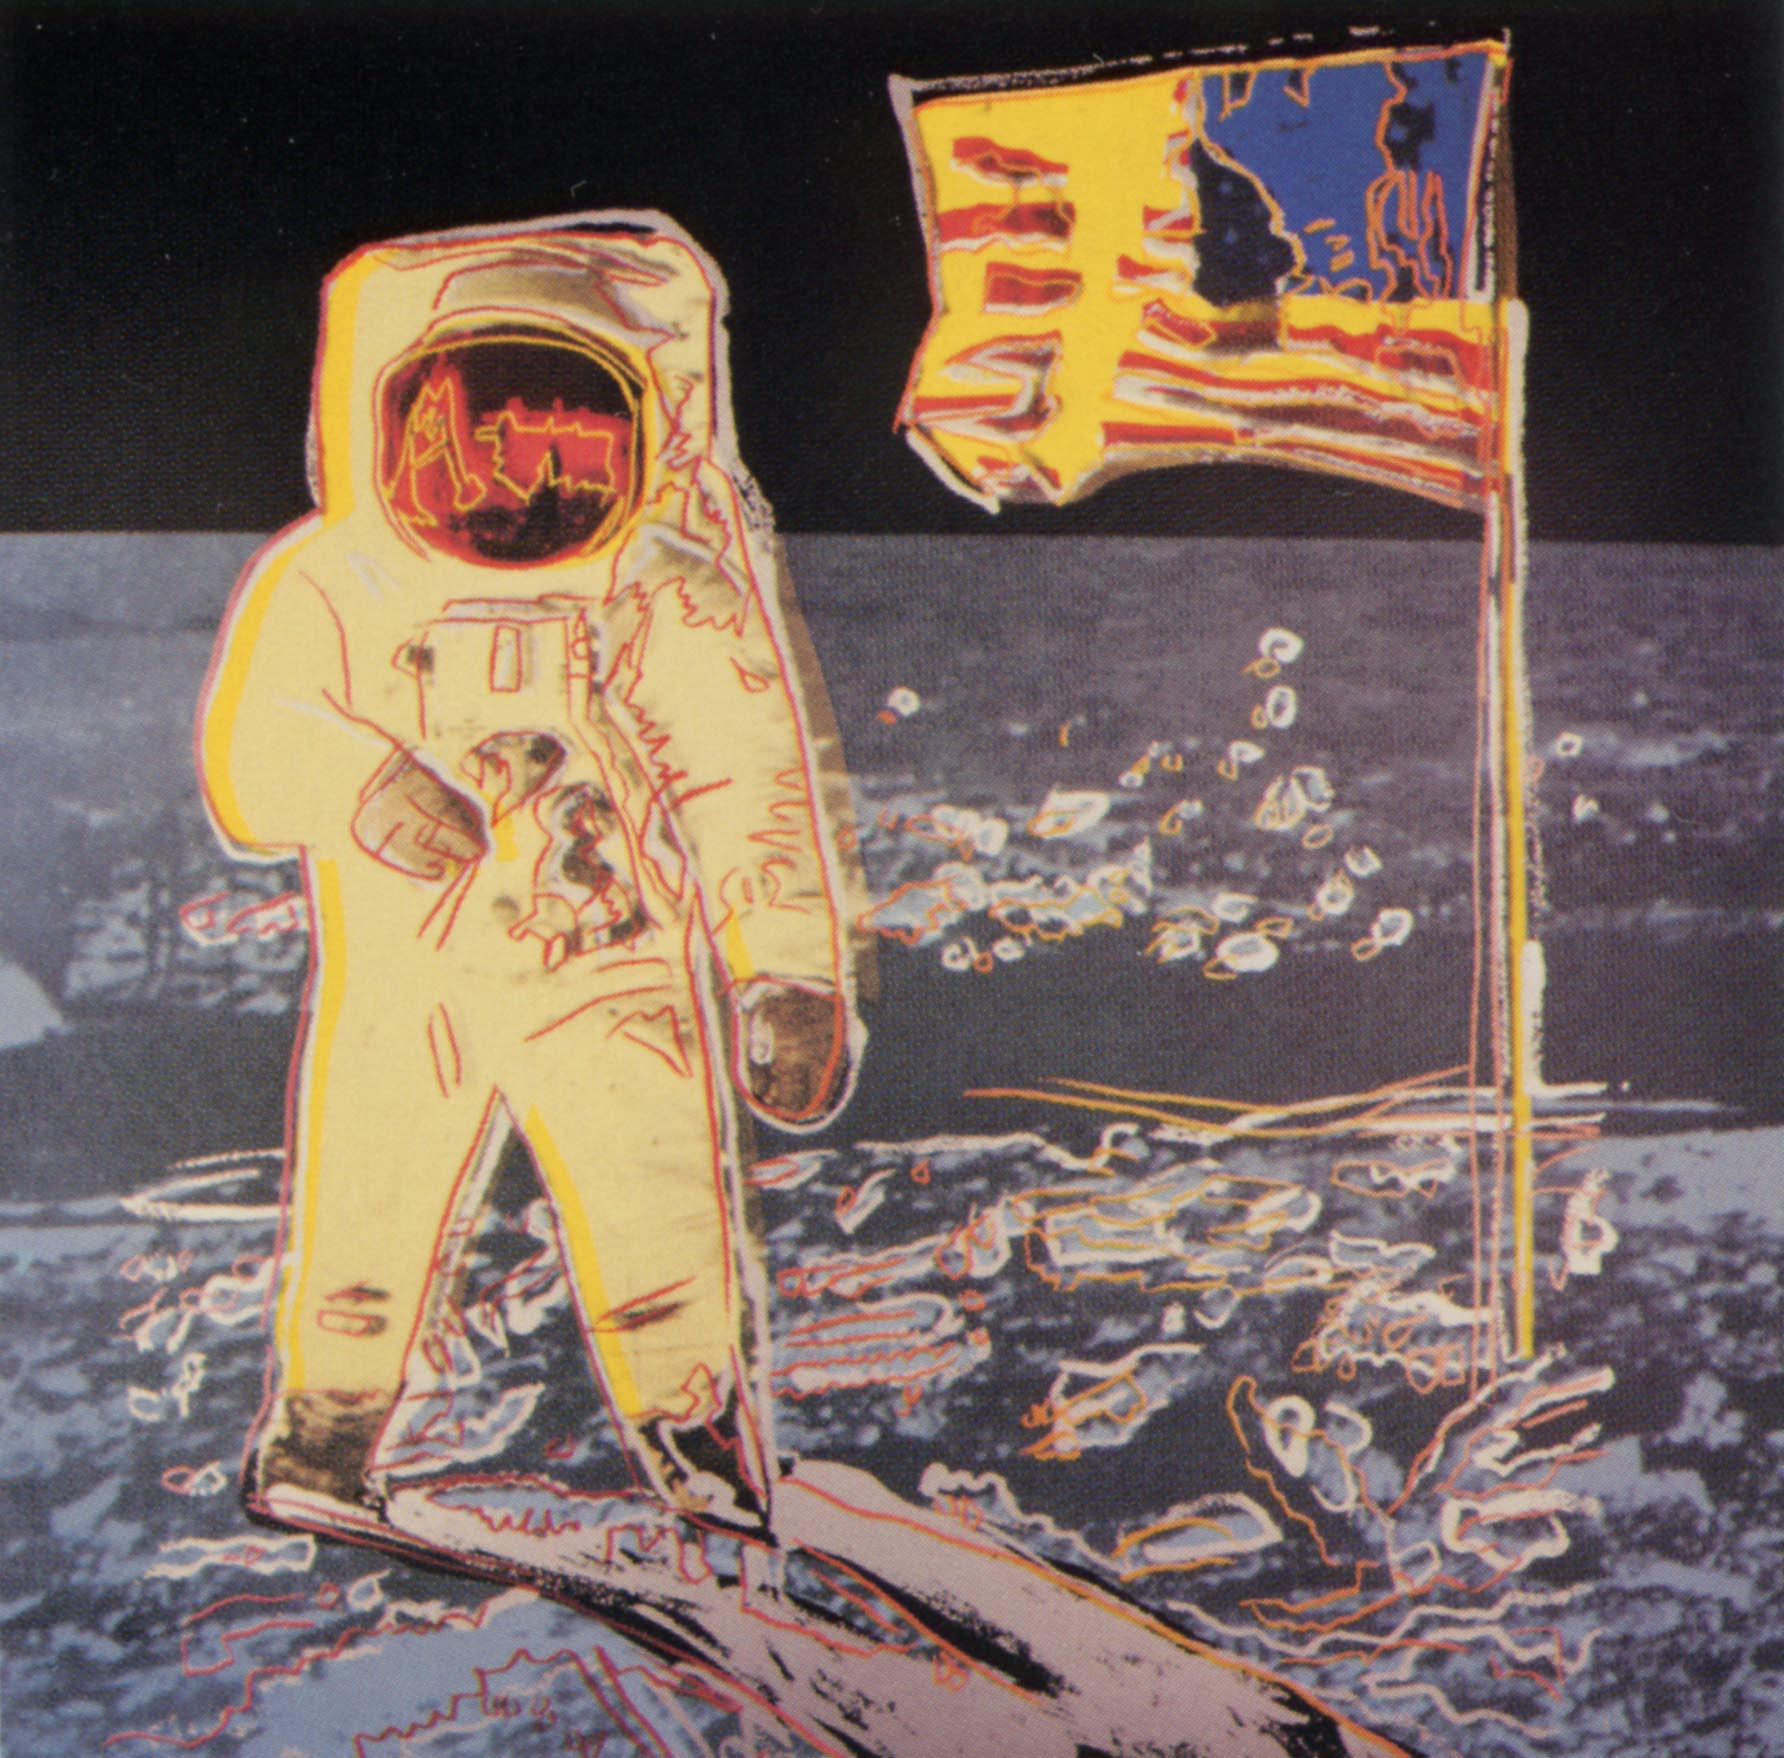 Moonwalk - Andy Warhol, 1987 (d'après une photo de Buzz Aldrin)